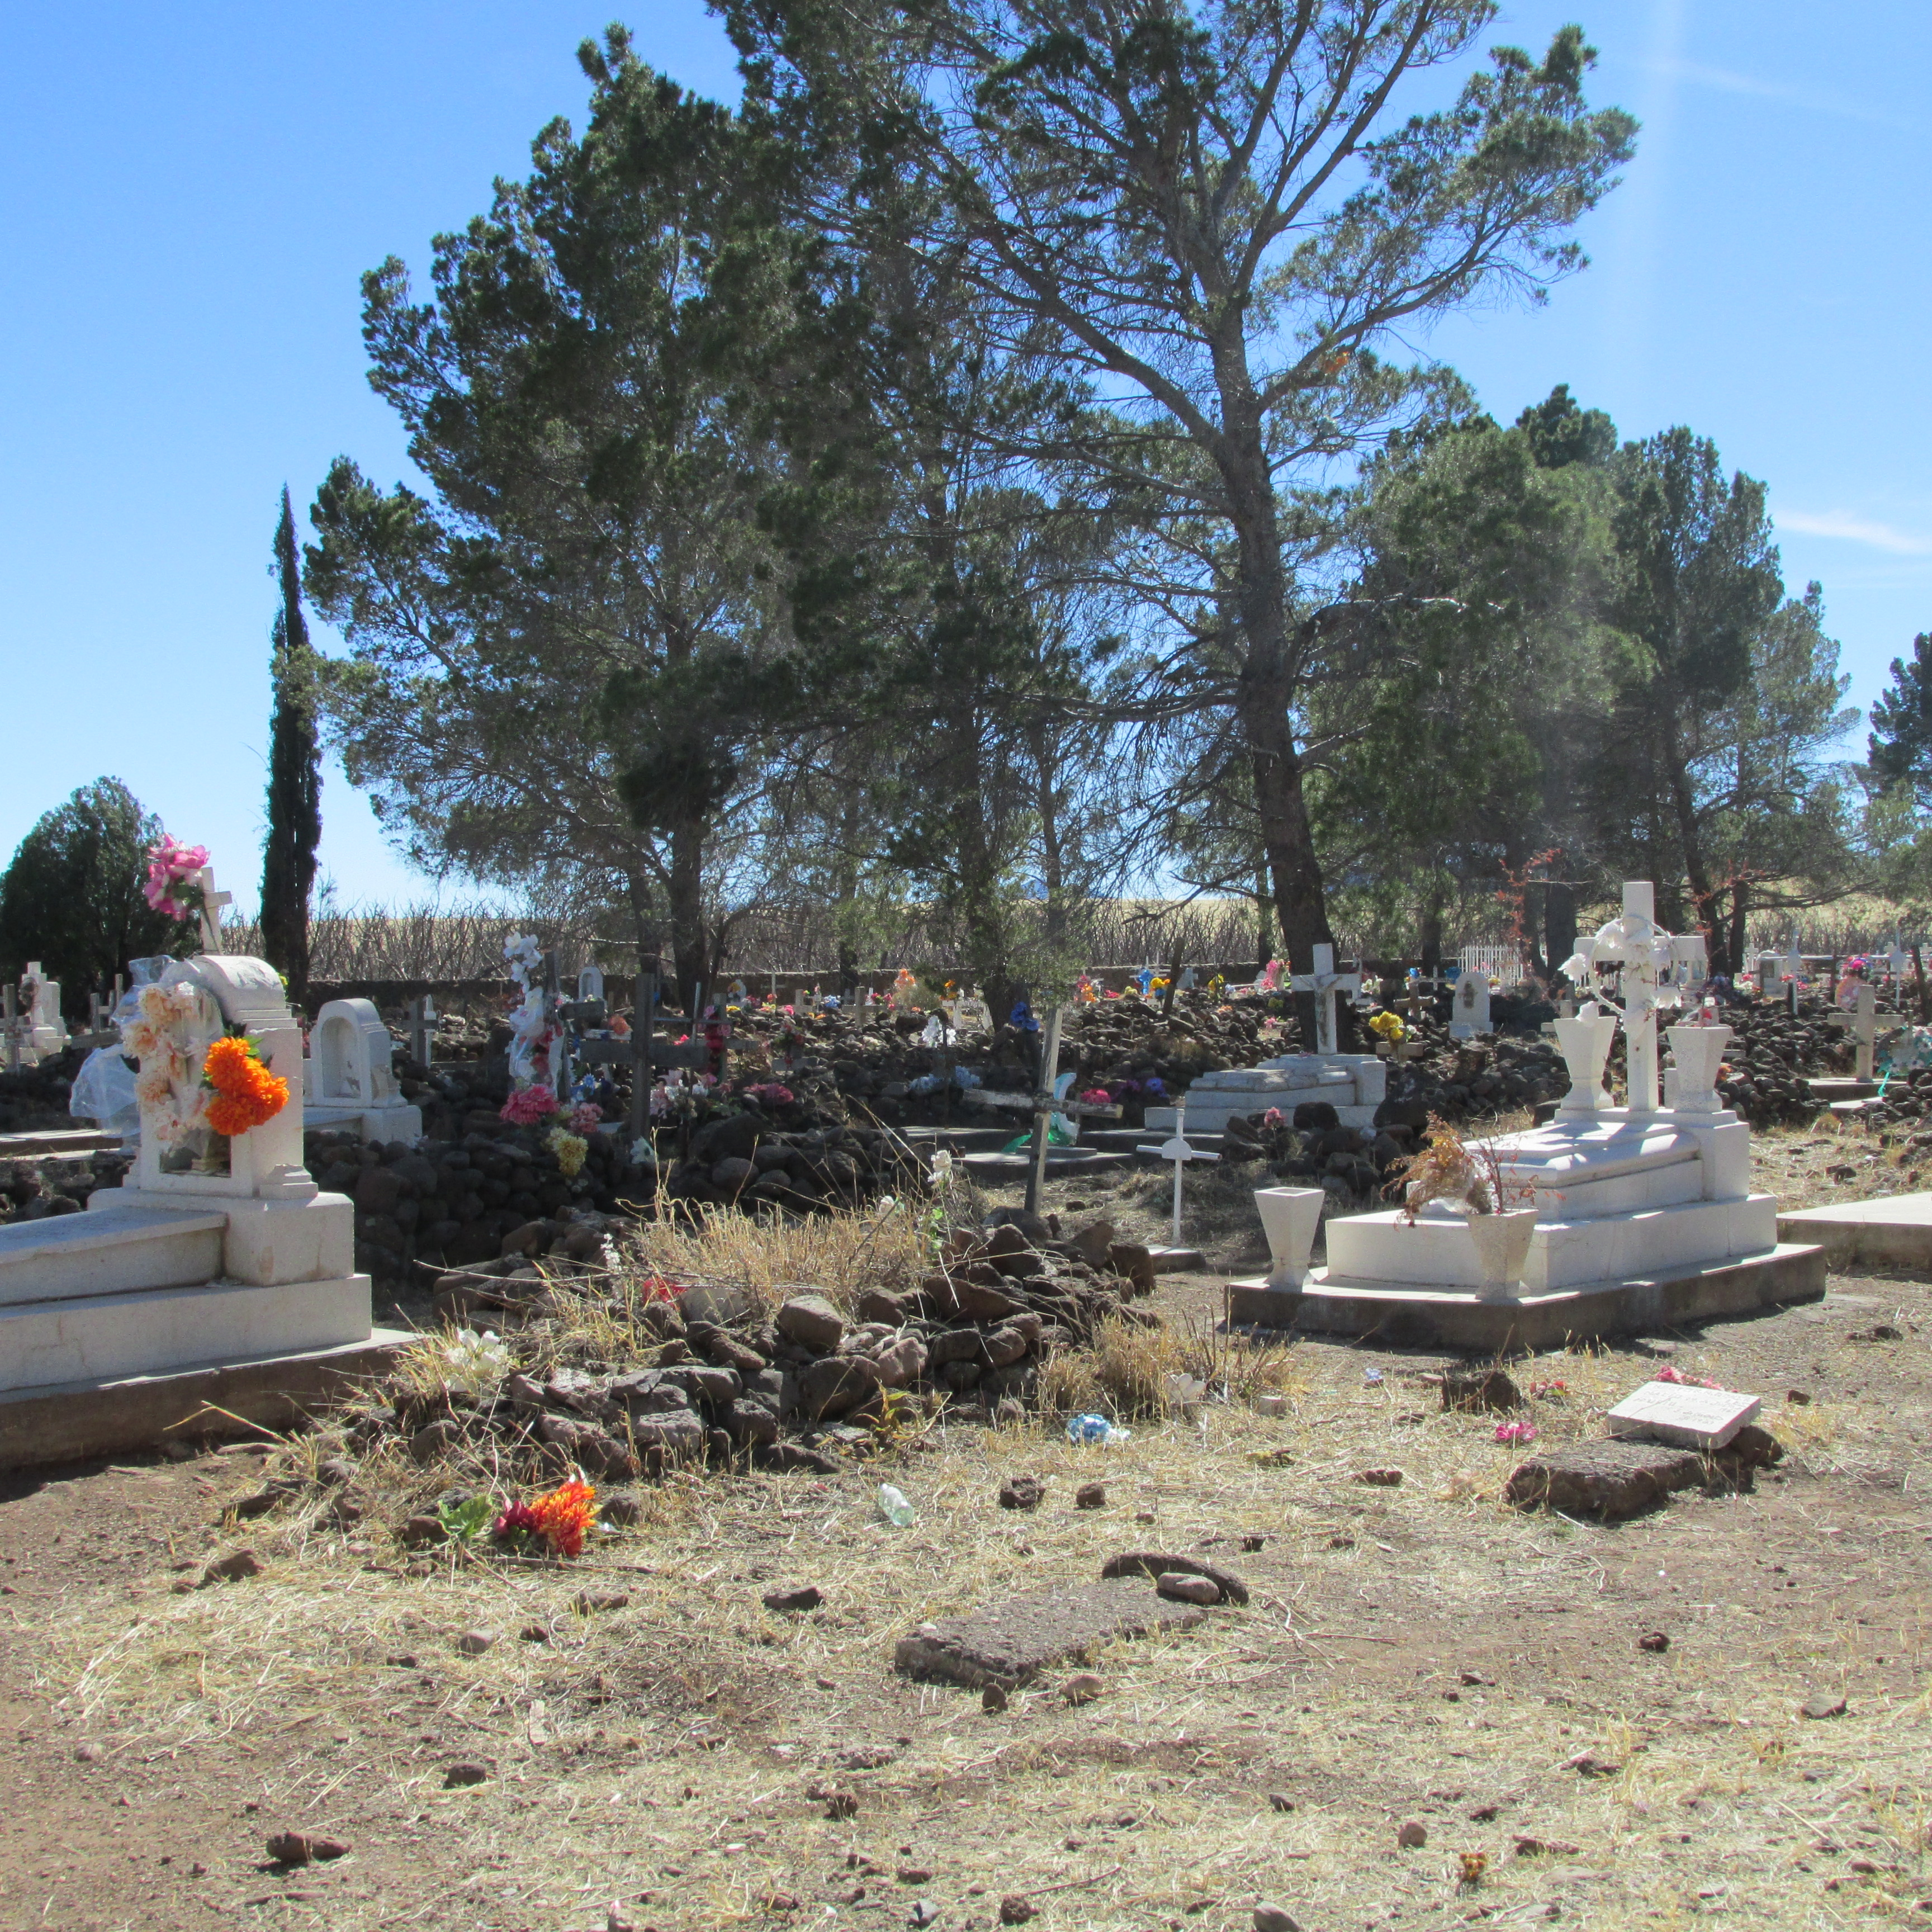 So sad that this is the only picture I got of the Mexican graves in the Juarez cemetery. They were really beautiful and this shot does not do it justice. But it is all I got :-(